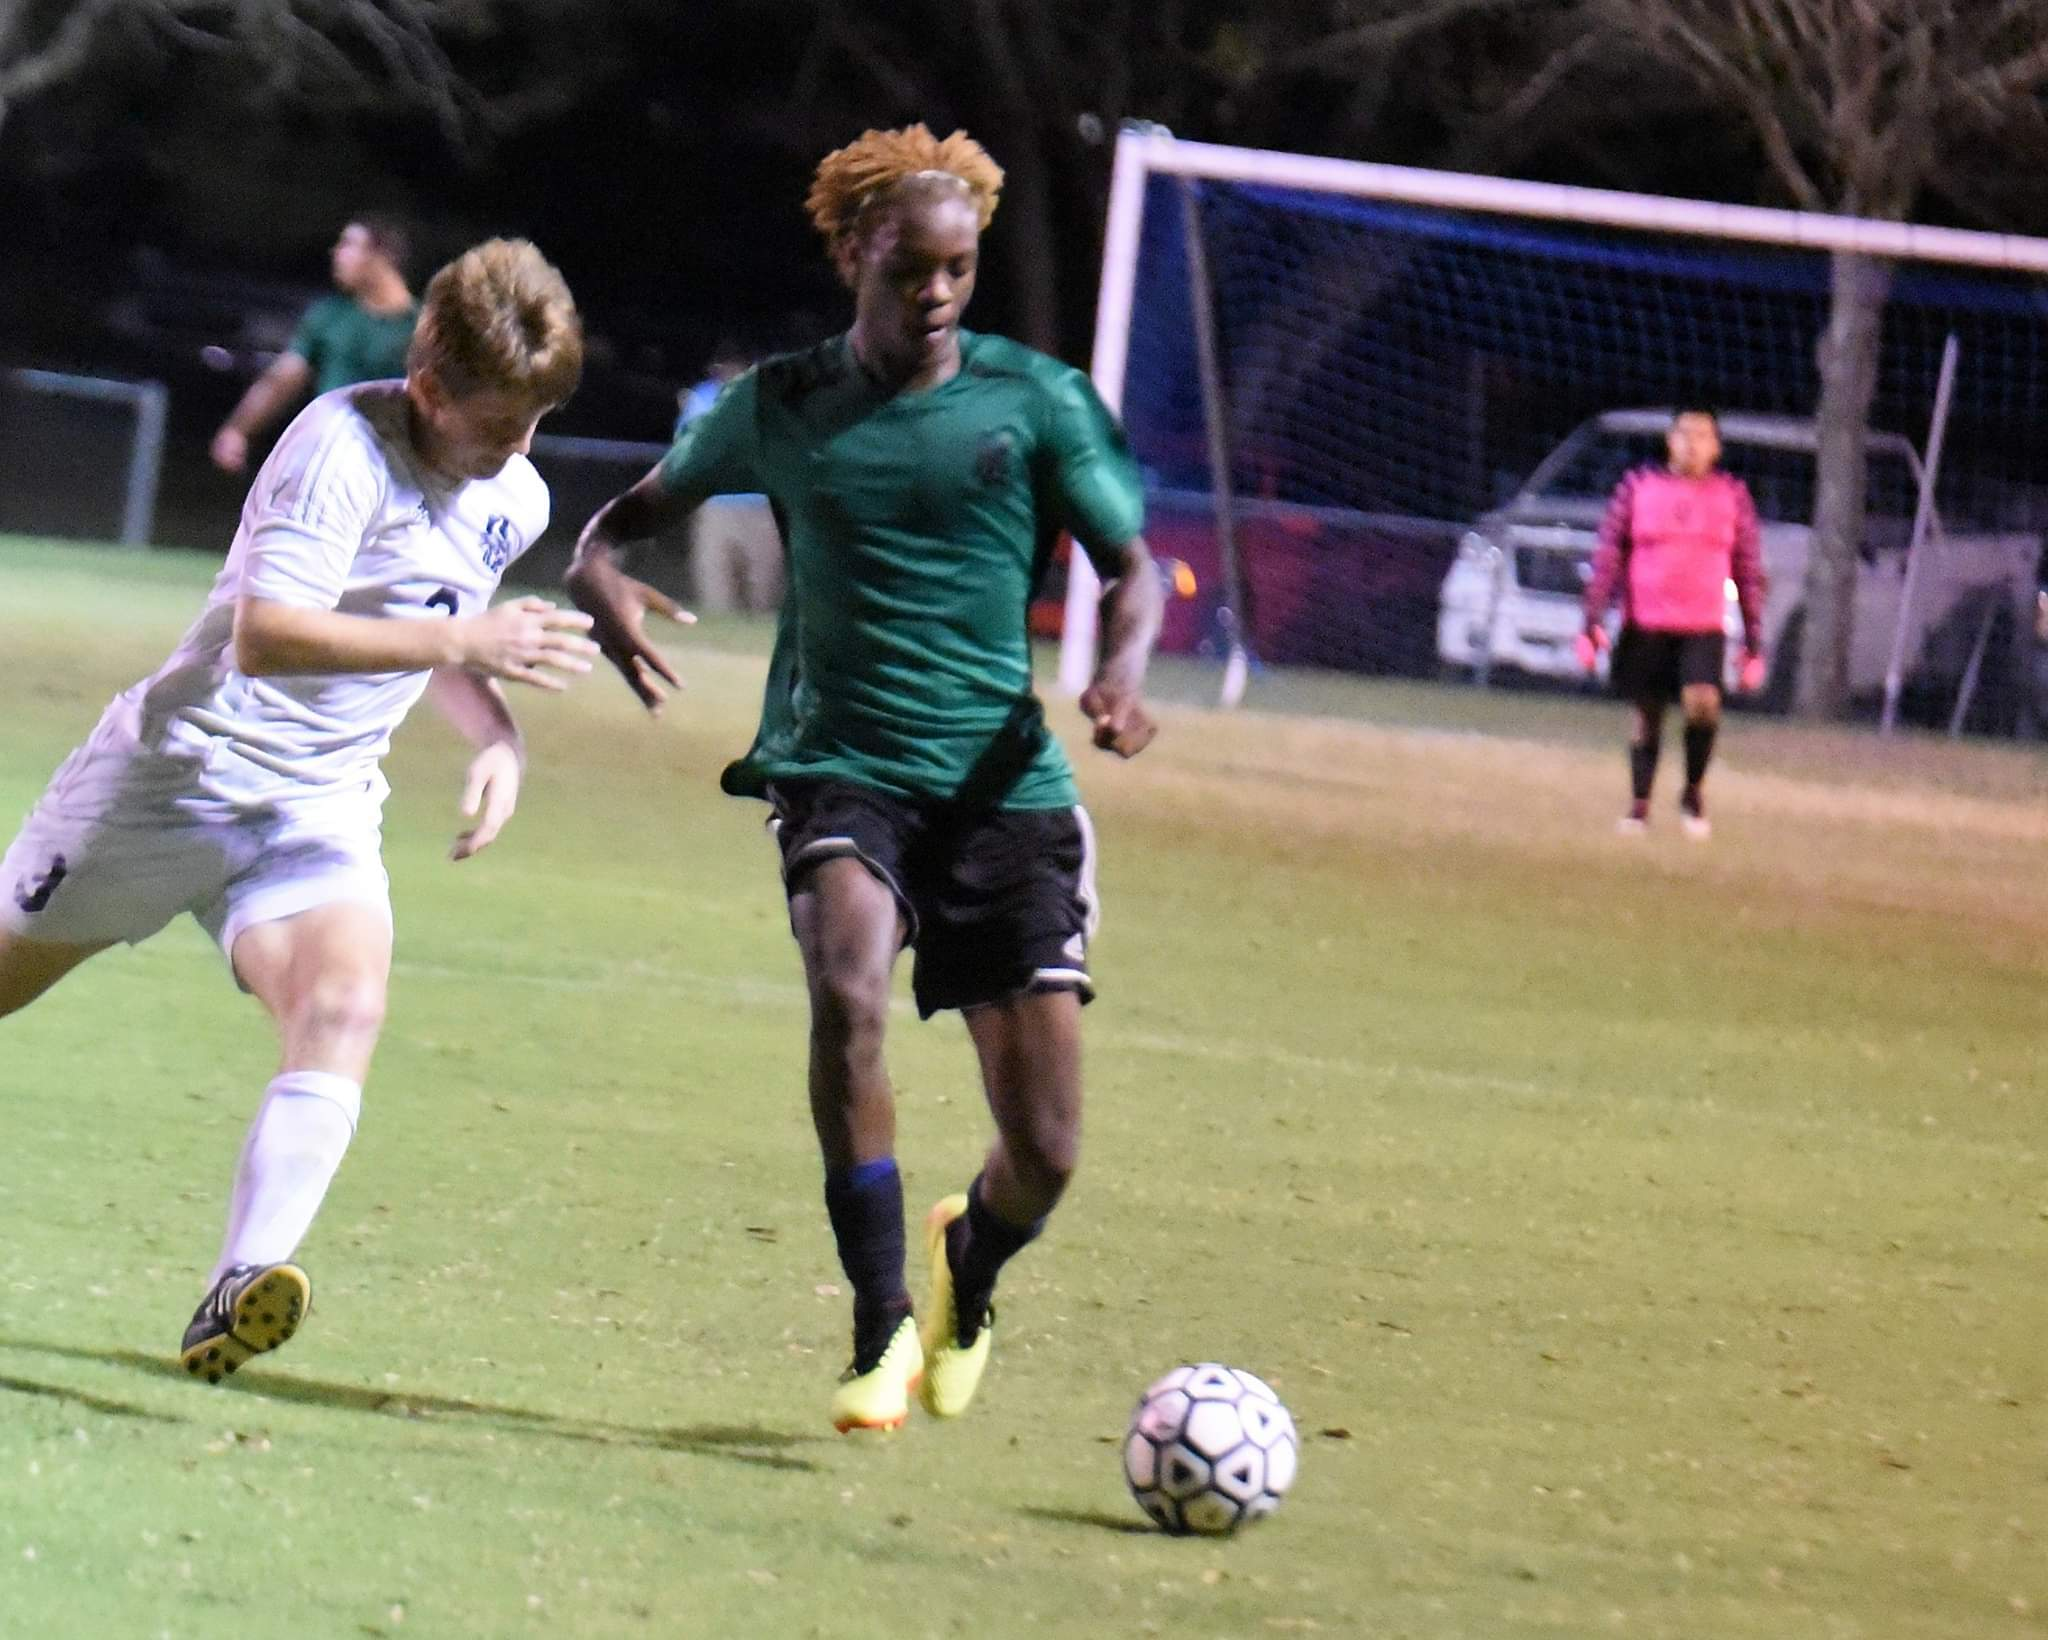 """North Lenoir's Taiwan Hines was the Neuse News Player of the Year in soccer, and three other Hawks made the list. Photo by William """"Bud"""" Hardy / Neuse News"""